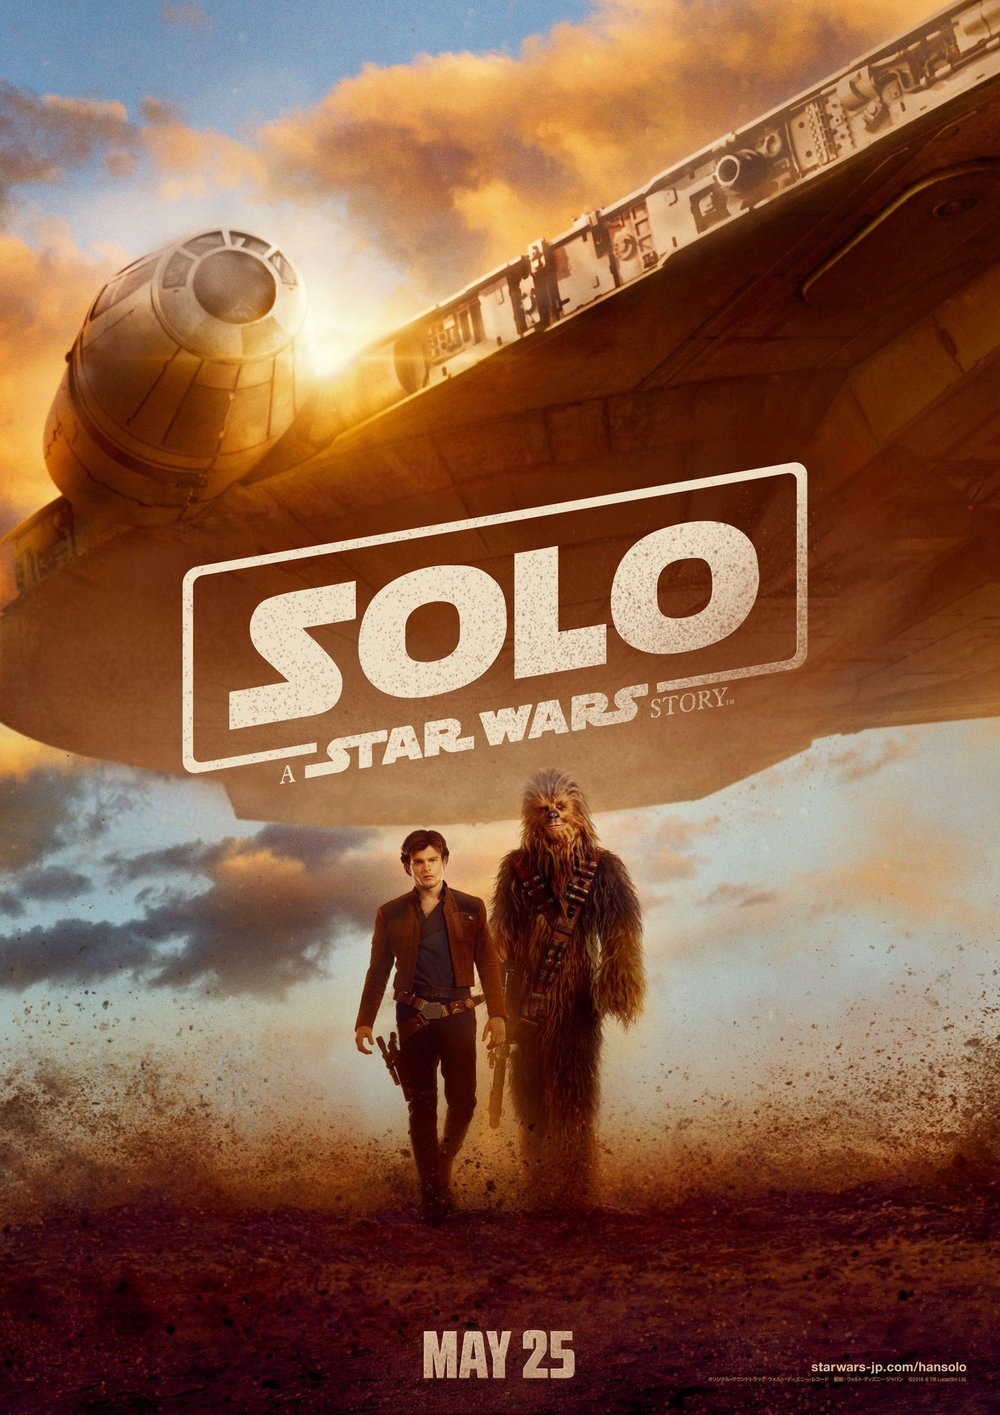 Solo-A-Star-Wars-Story-poster-6.jpg